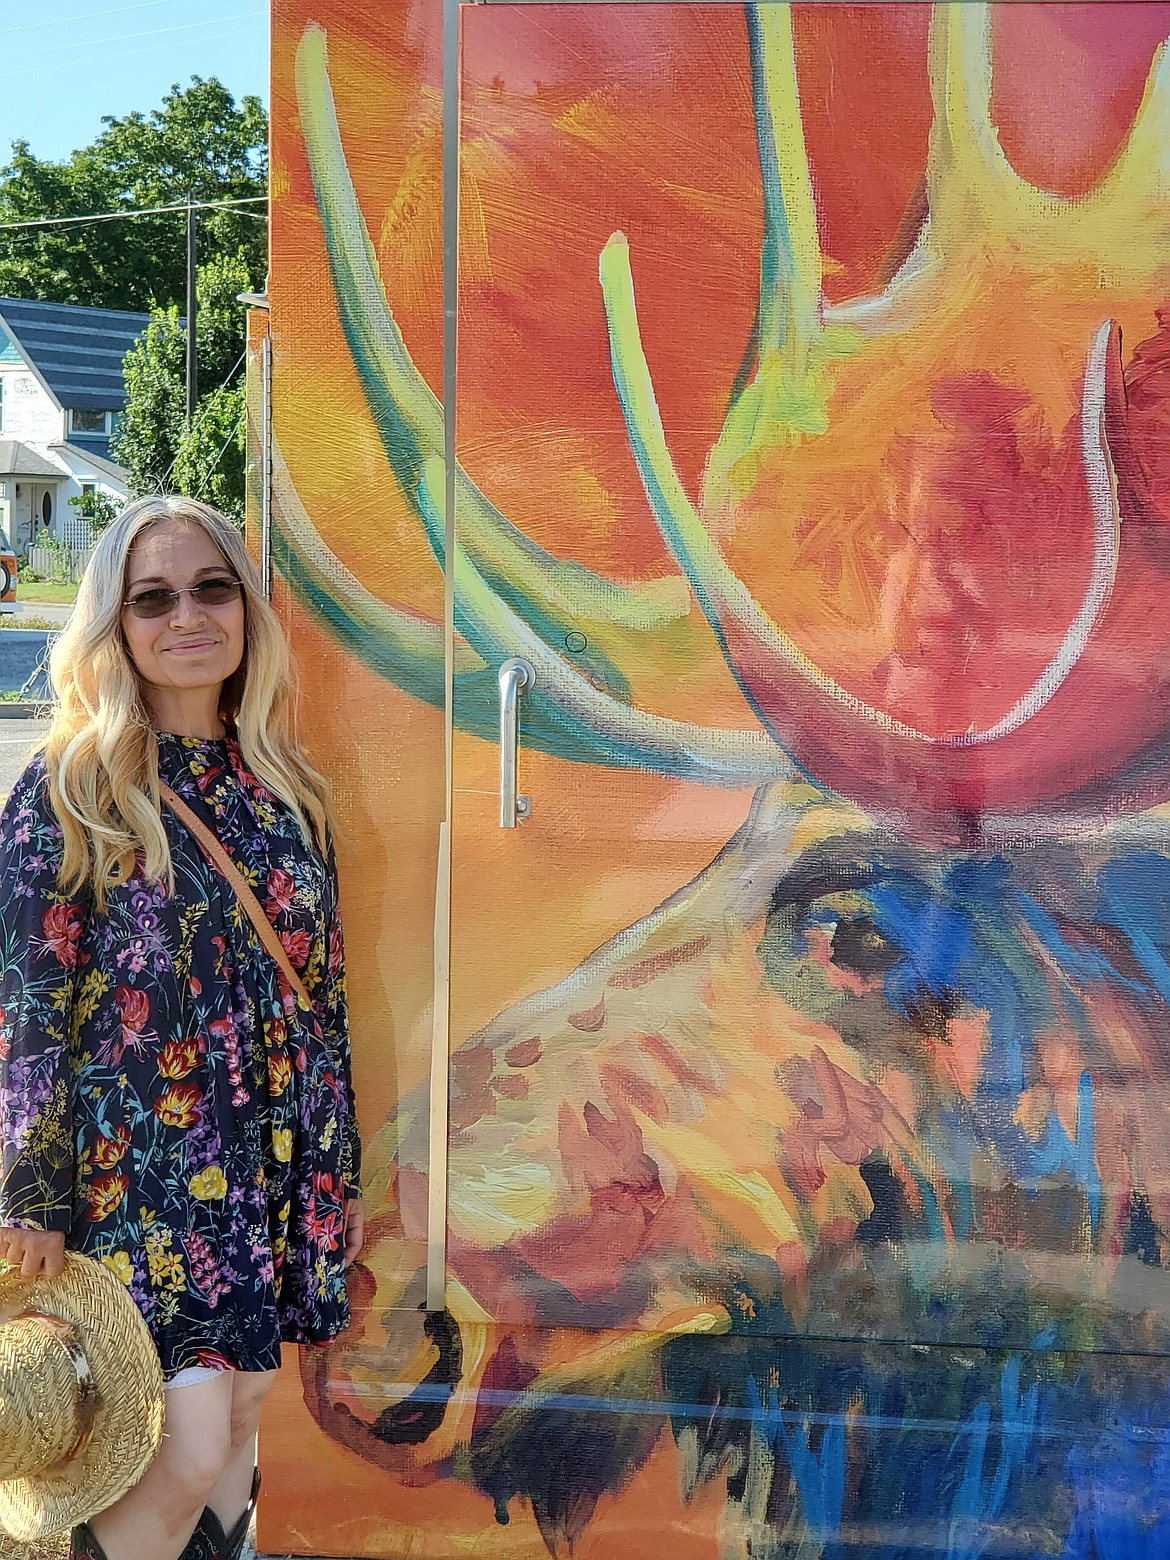 From a young age, Maggie Dawson knew art was a part of who she was. Her mural of a moose is a fan favorite as part of a collaborative project by the Sandpoint Arts Commission and Historic Preservation Commission to wrap the city's utility boxes with artwork and historic photos.